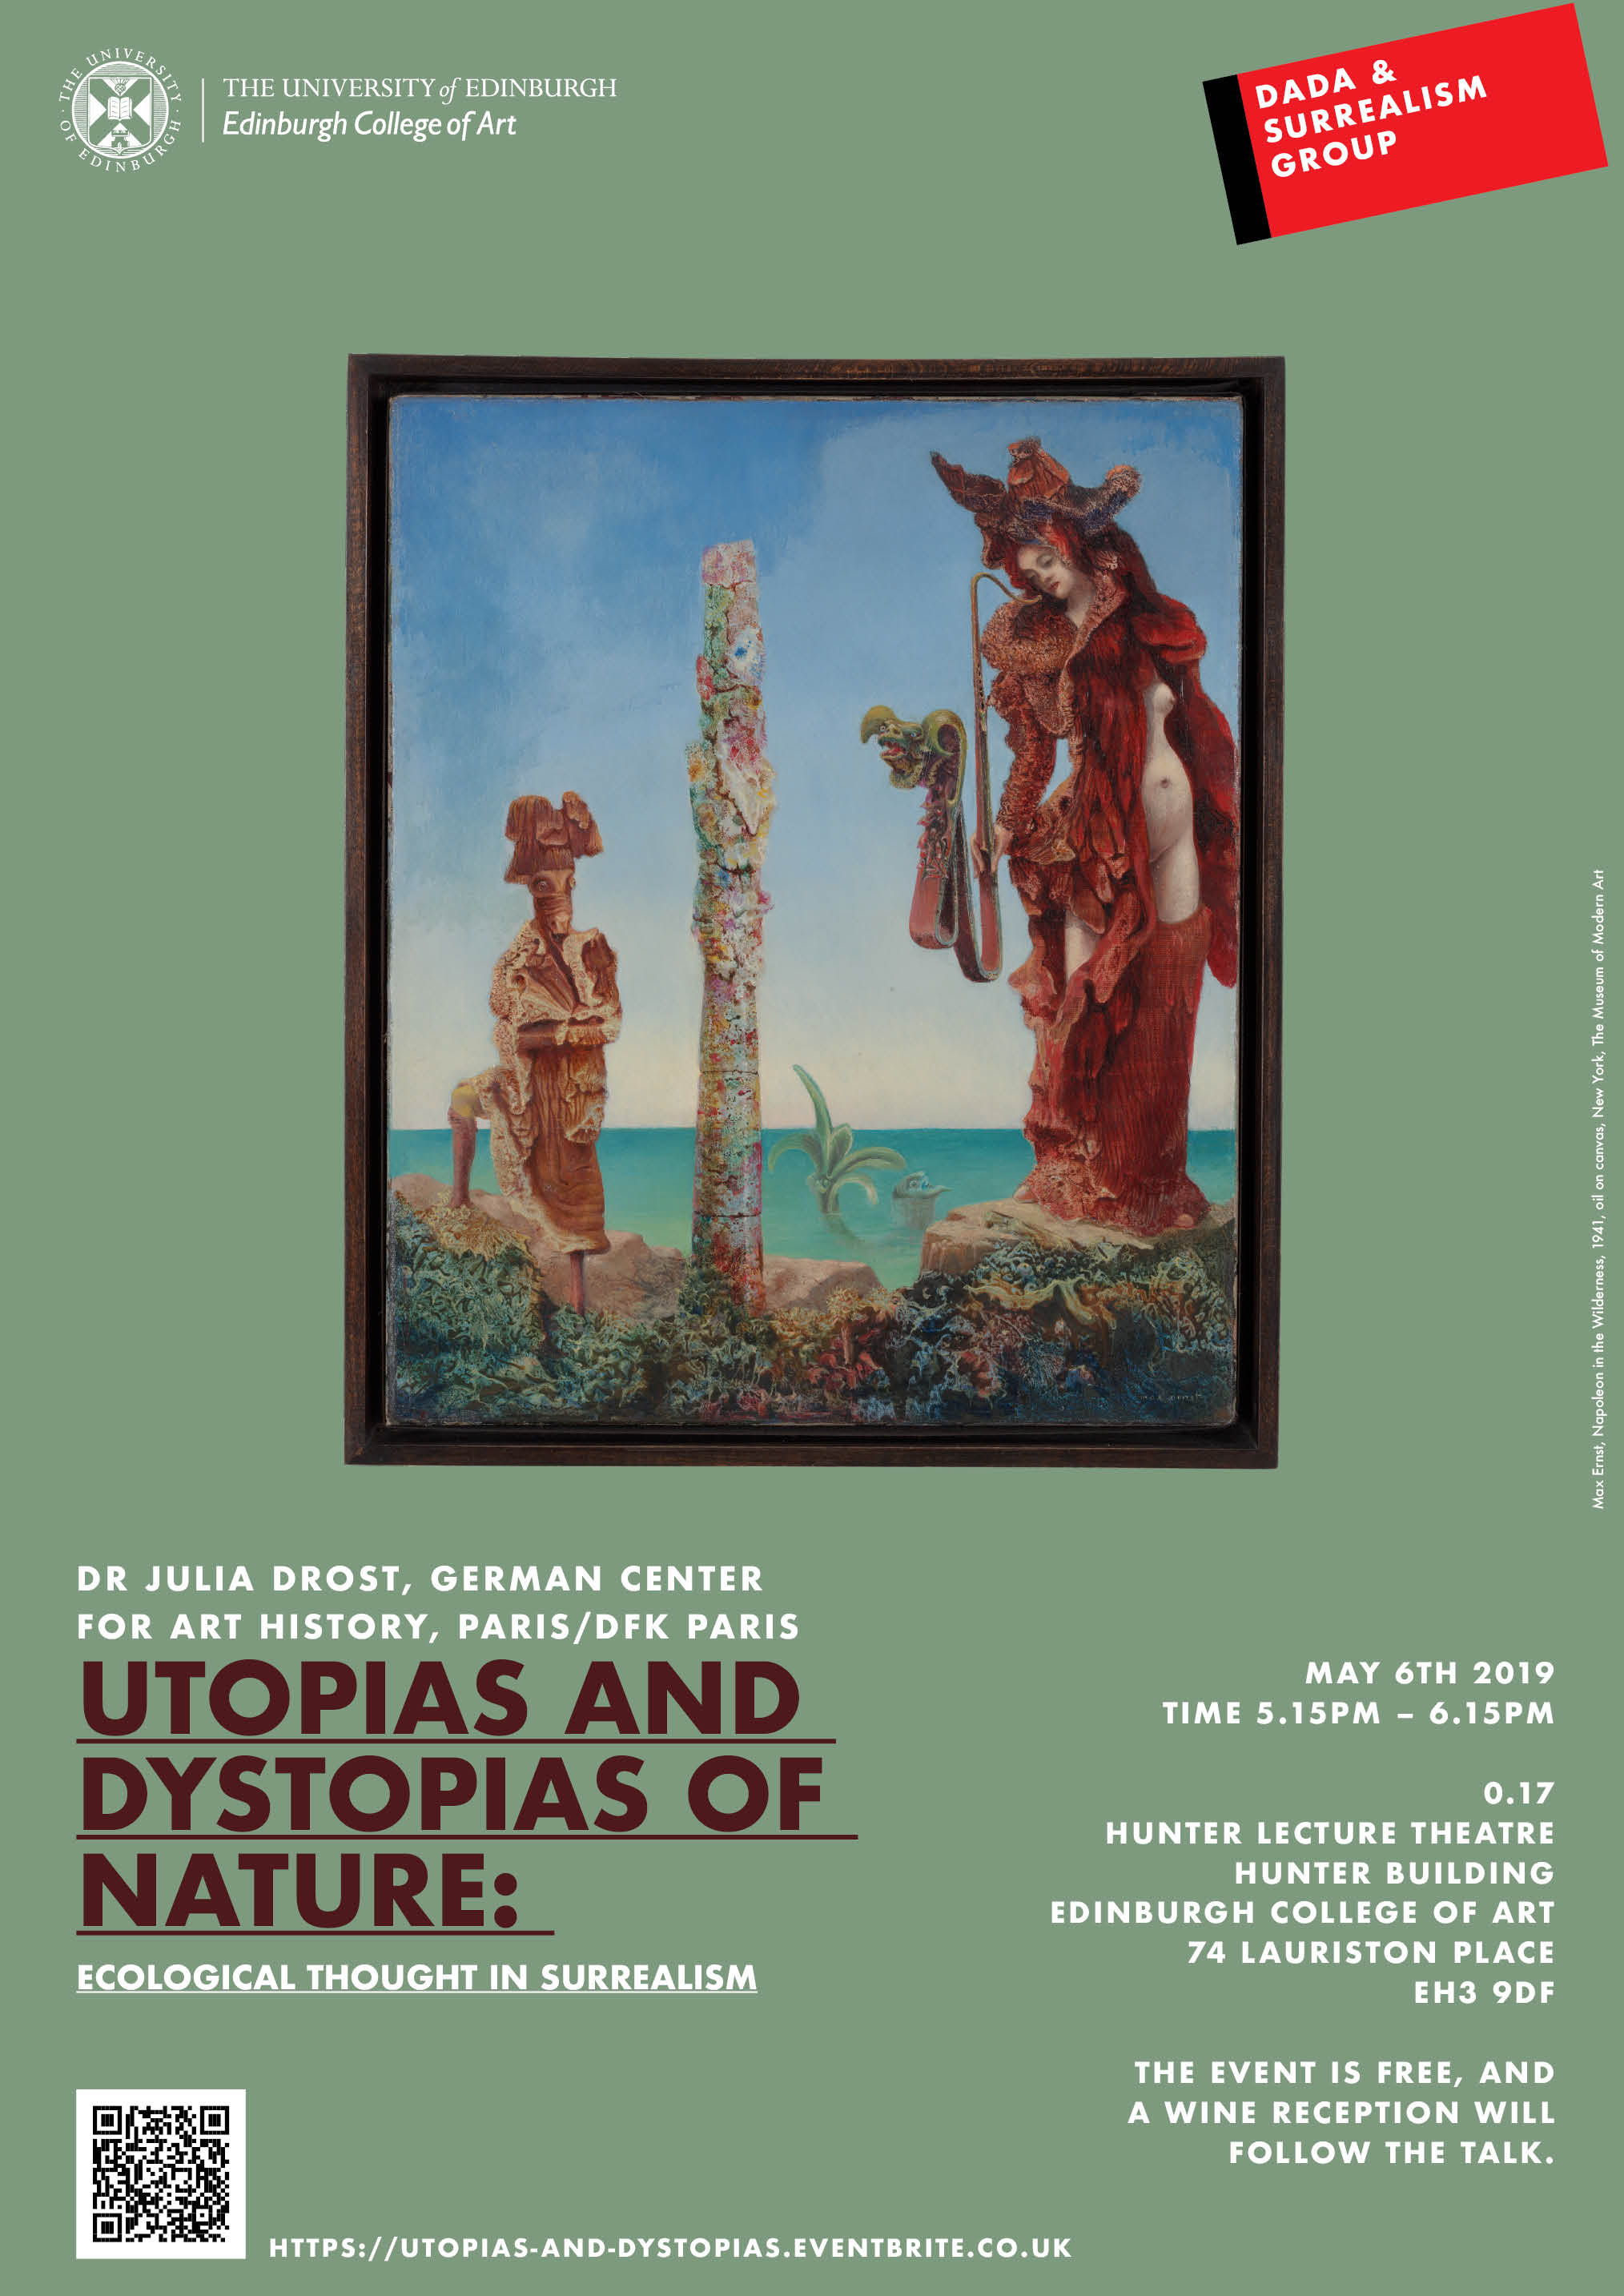 Utopias and Dystopias of Nature: Ecological Thought in Surrealism